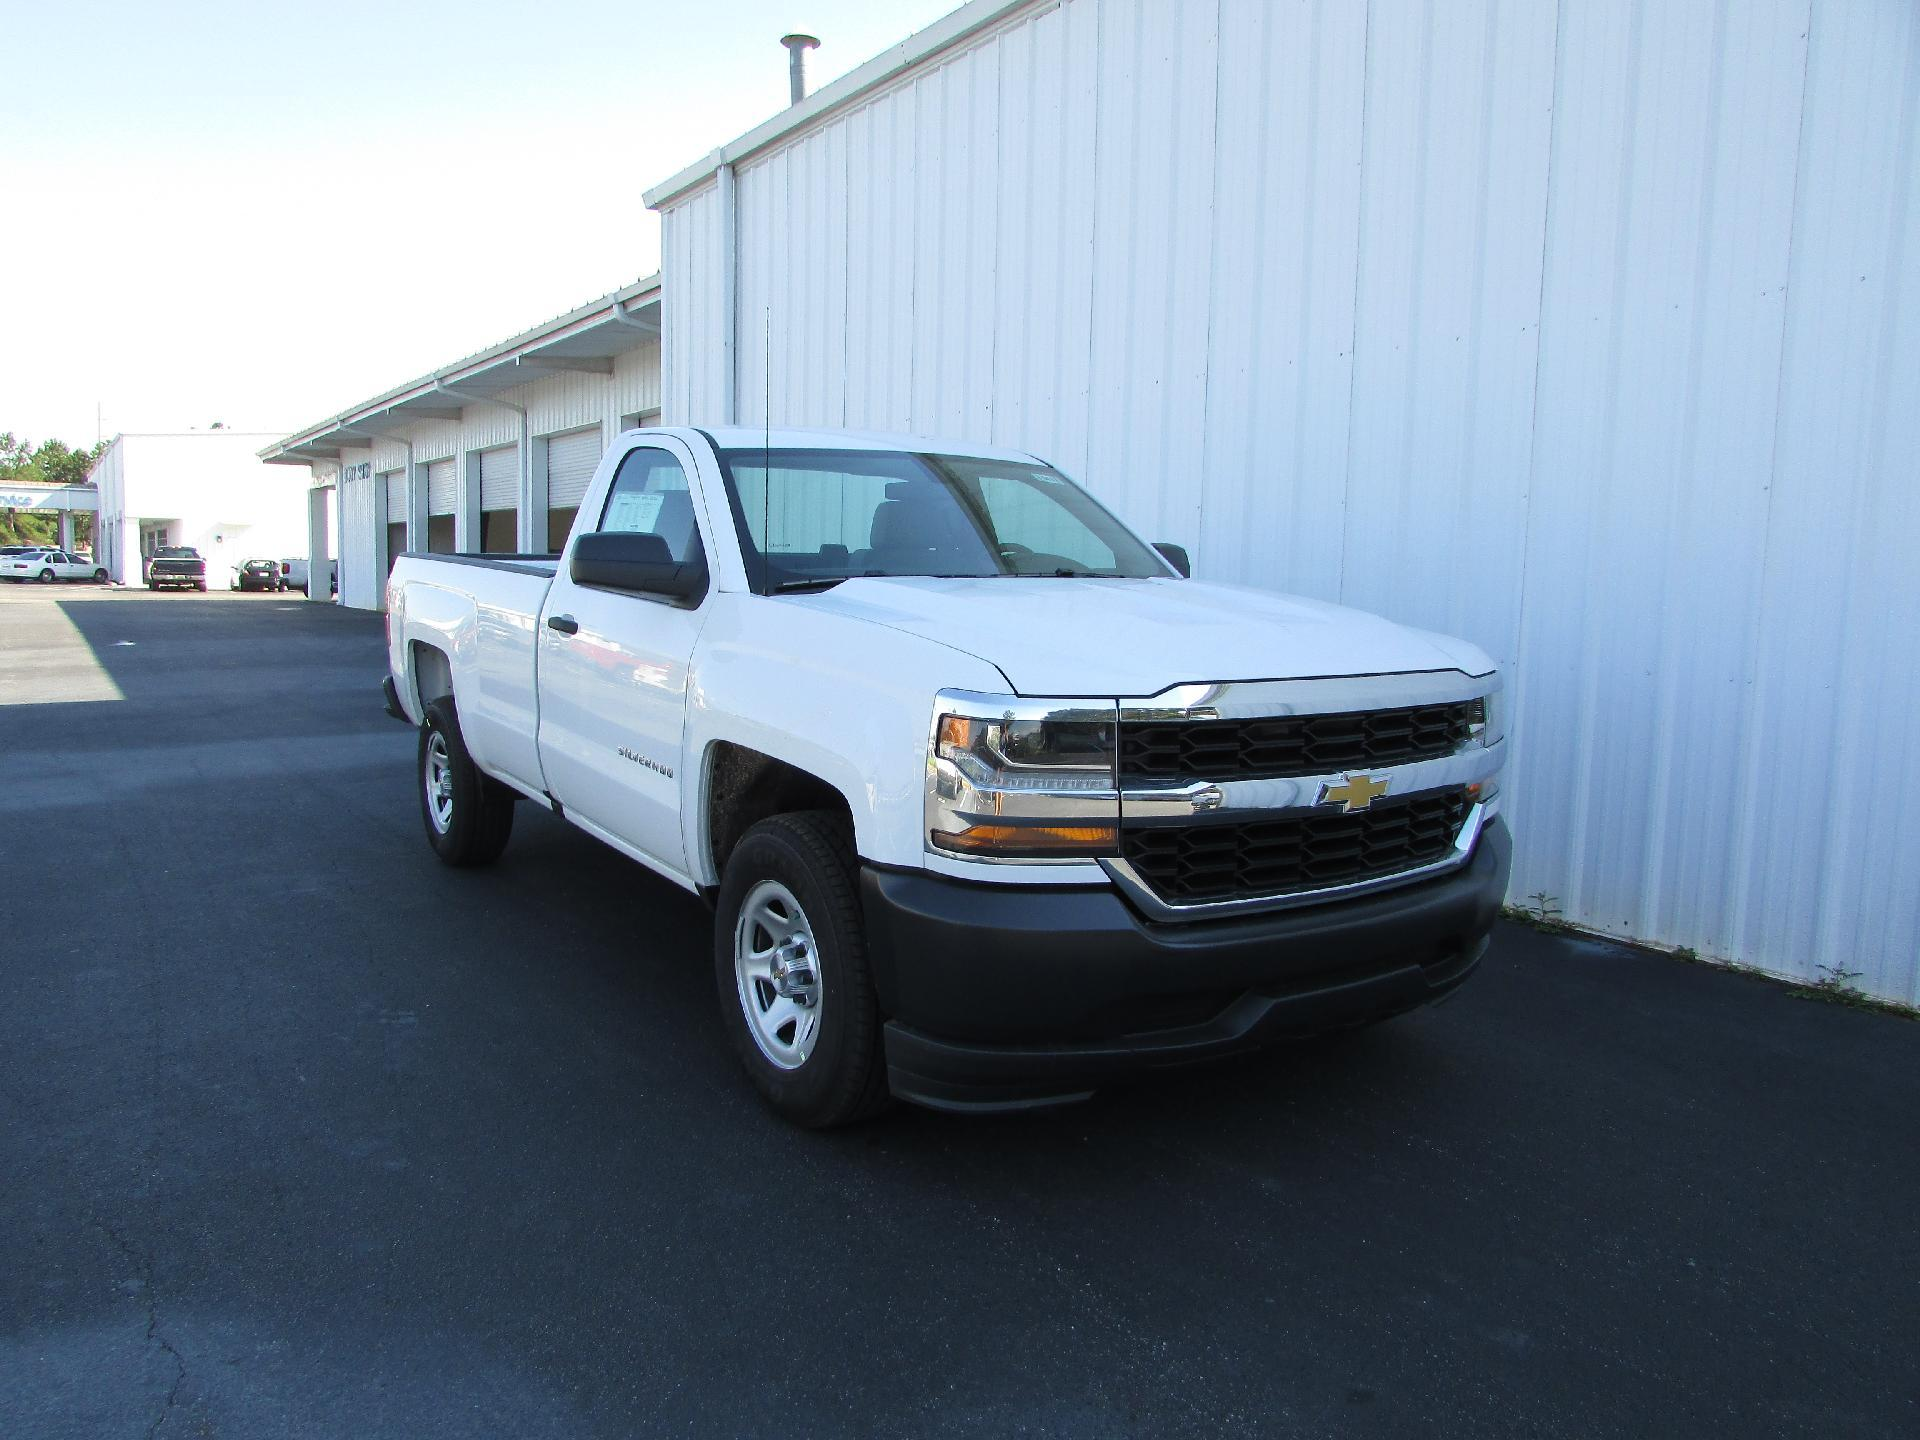 2018 Silverado 1500 Regular Cab 4x2,  Pickup #180432 - photo 1